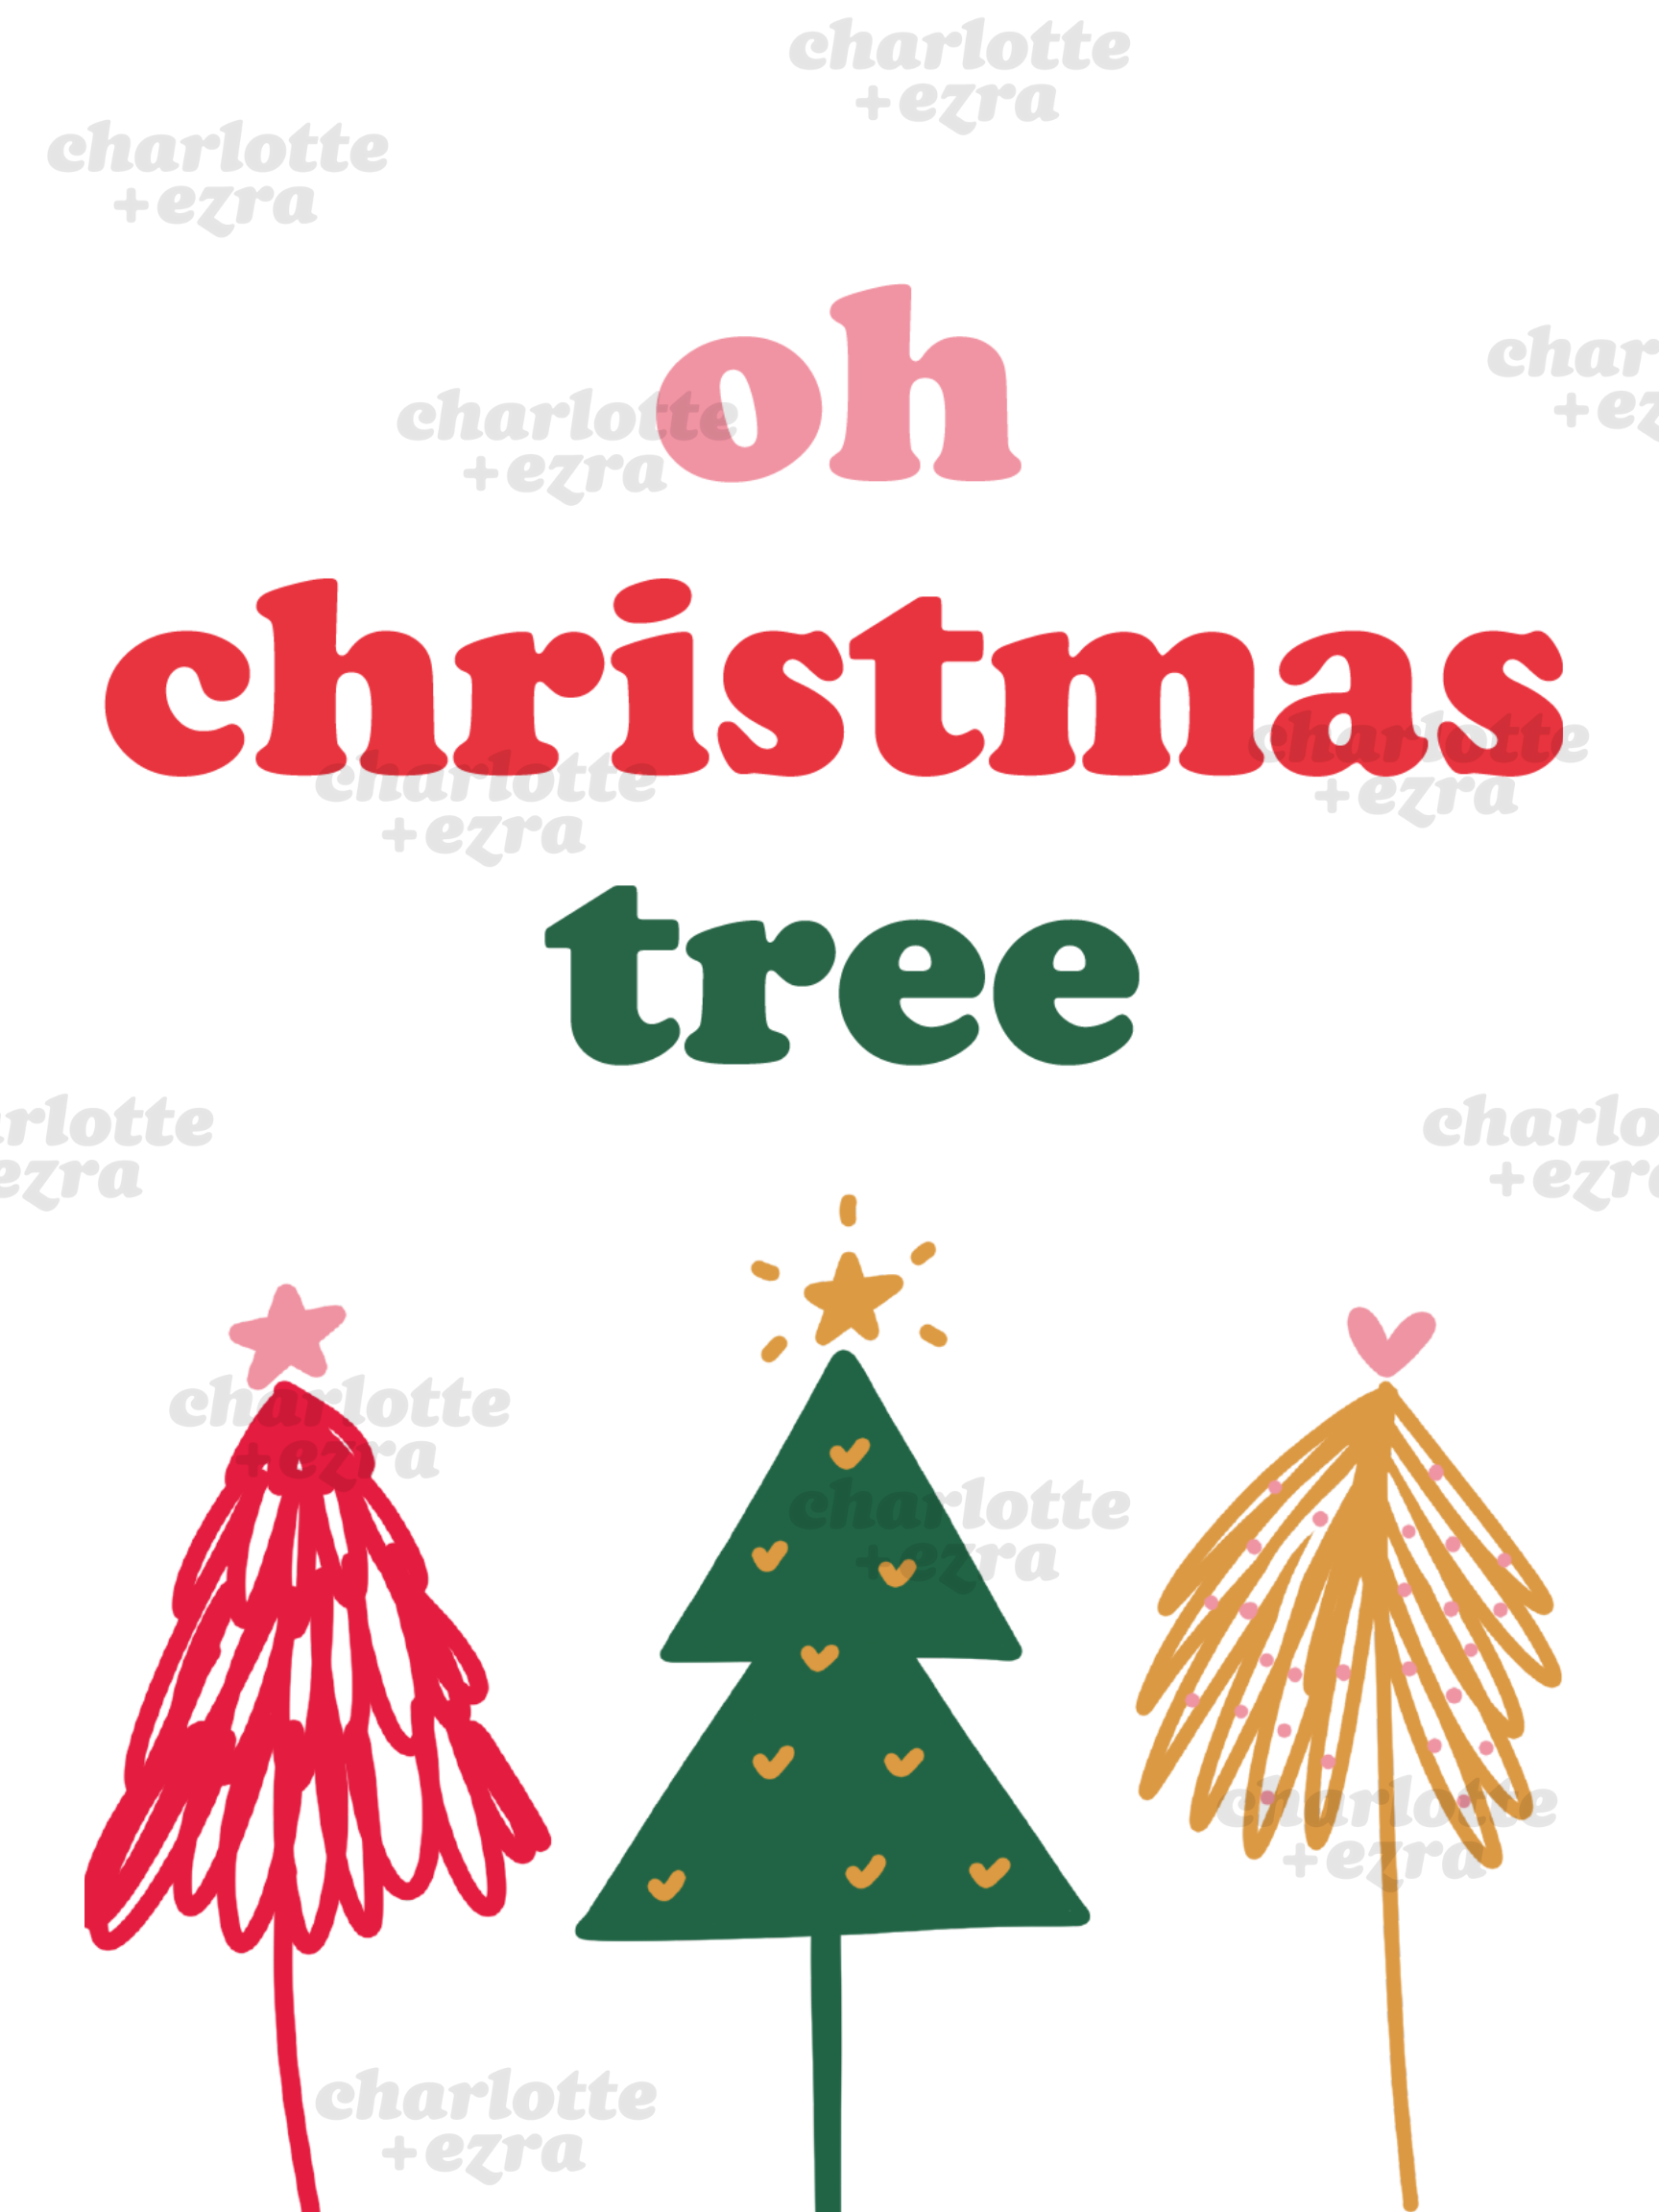 Oh Christmas tree printable